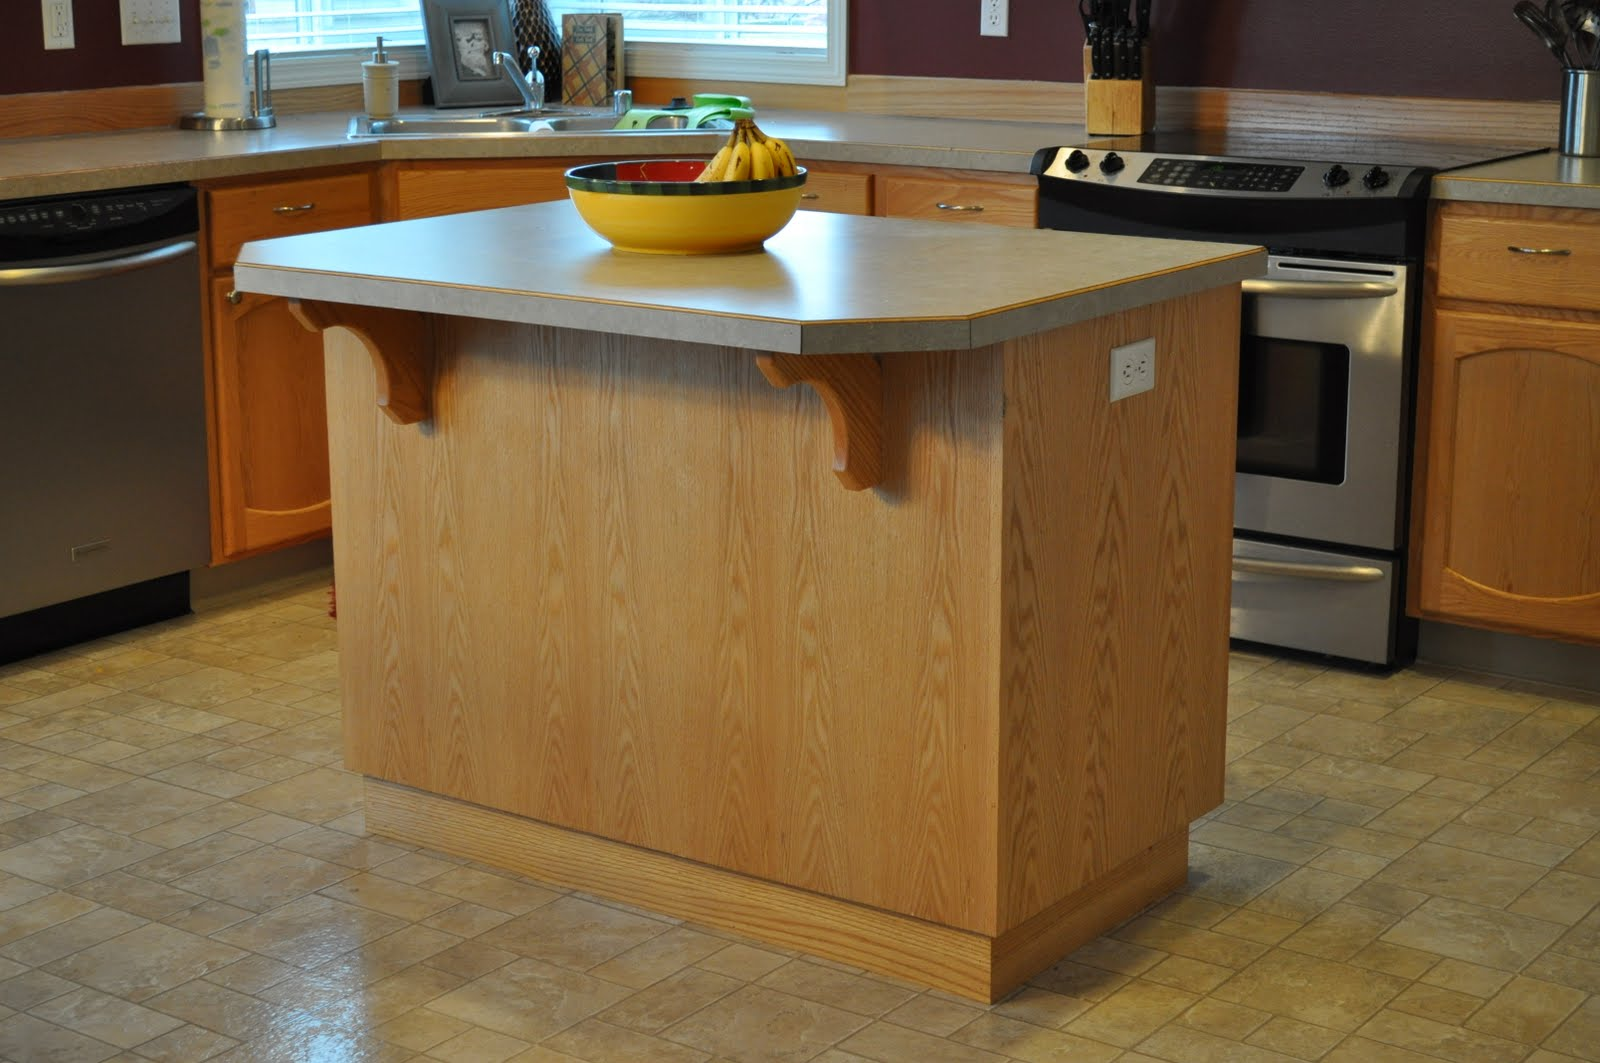 The dizzy house customizing your not so custom kitchen island for Custom kitchen islands